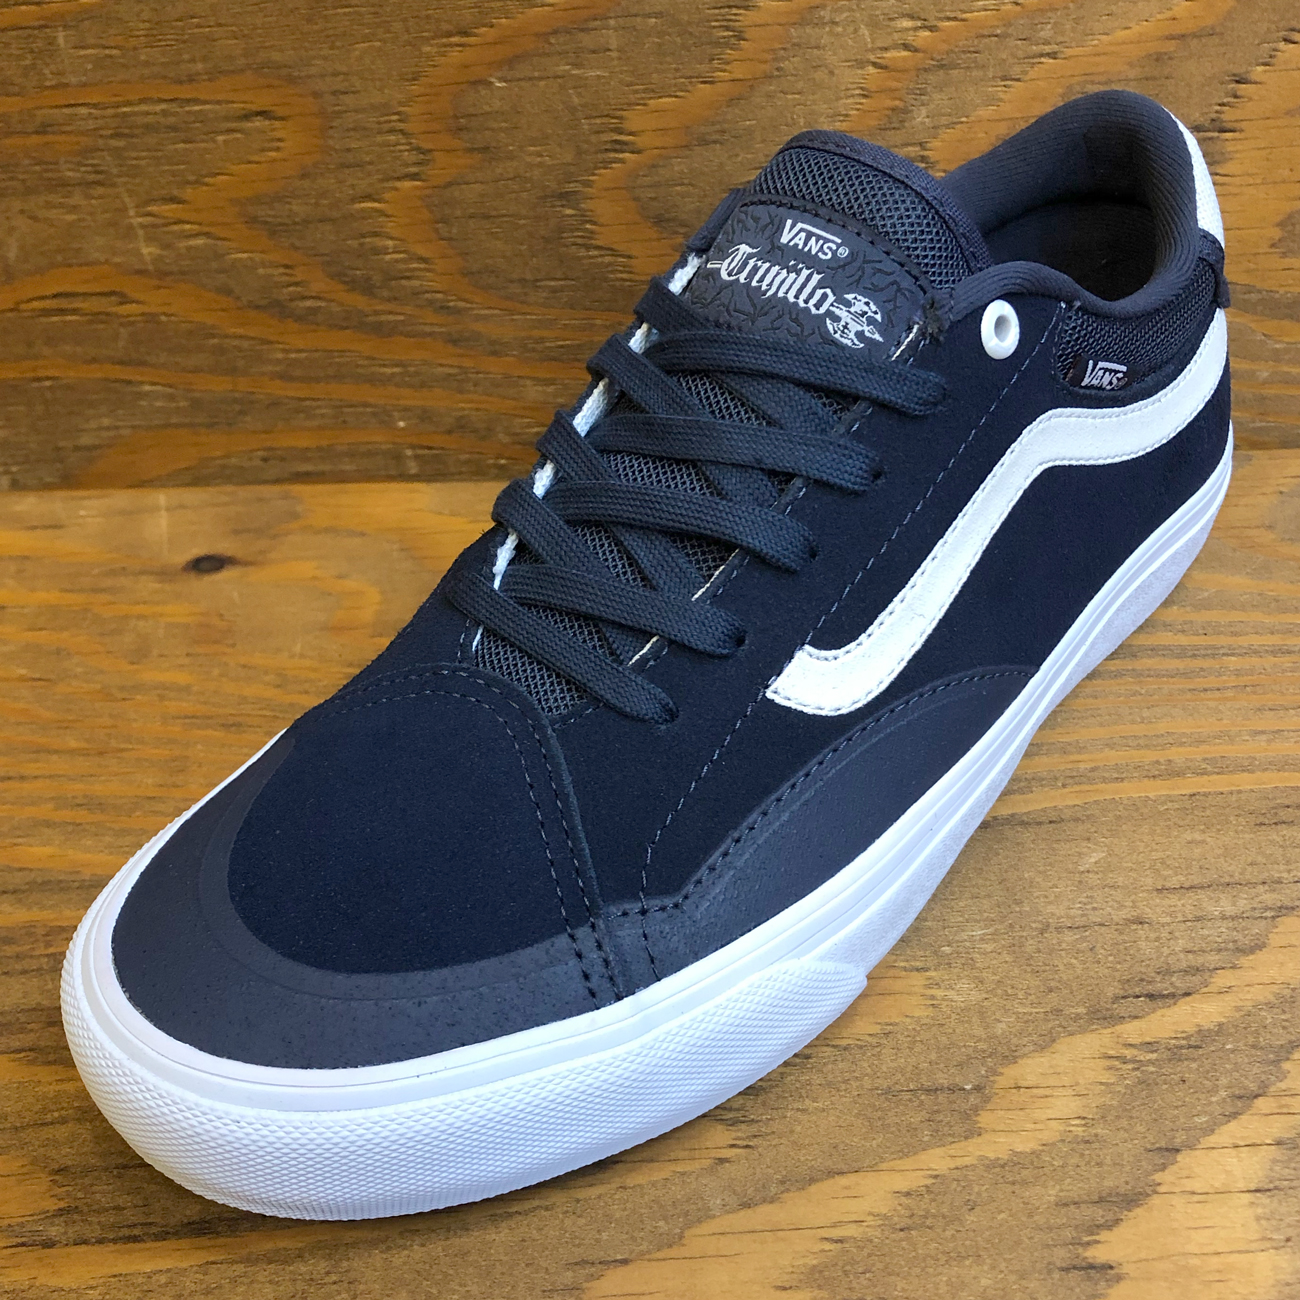 VANS TNT ADVANCED PROTOTYPE PARISIAN NIGHT